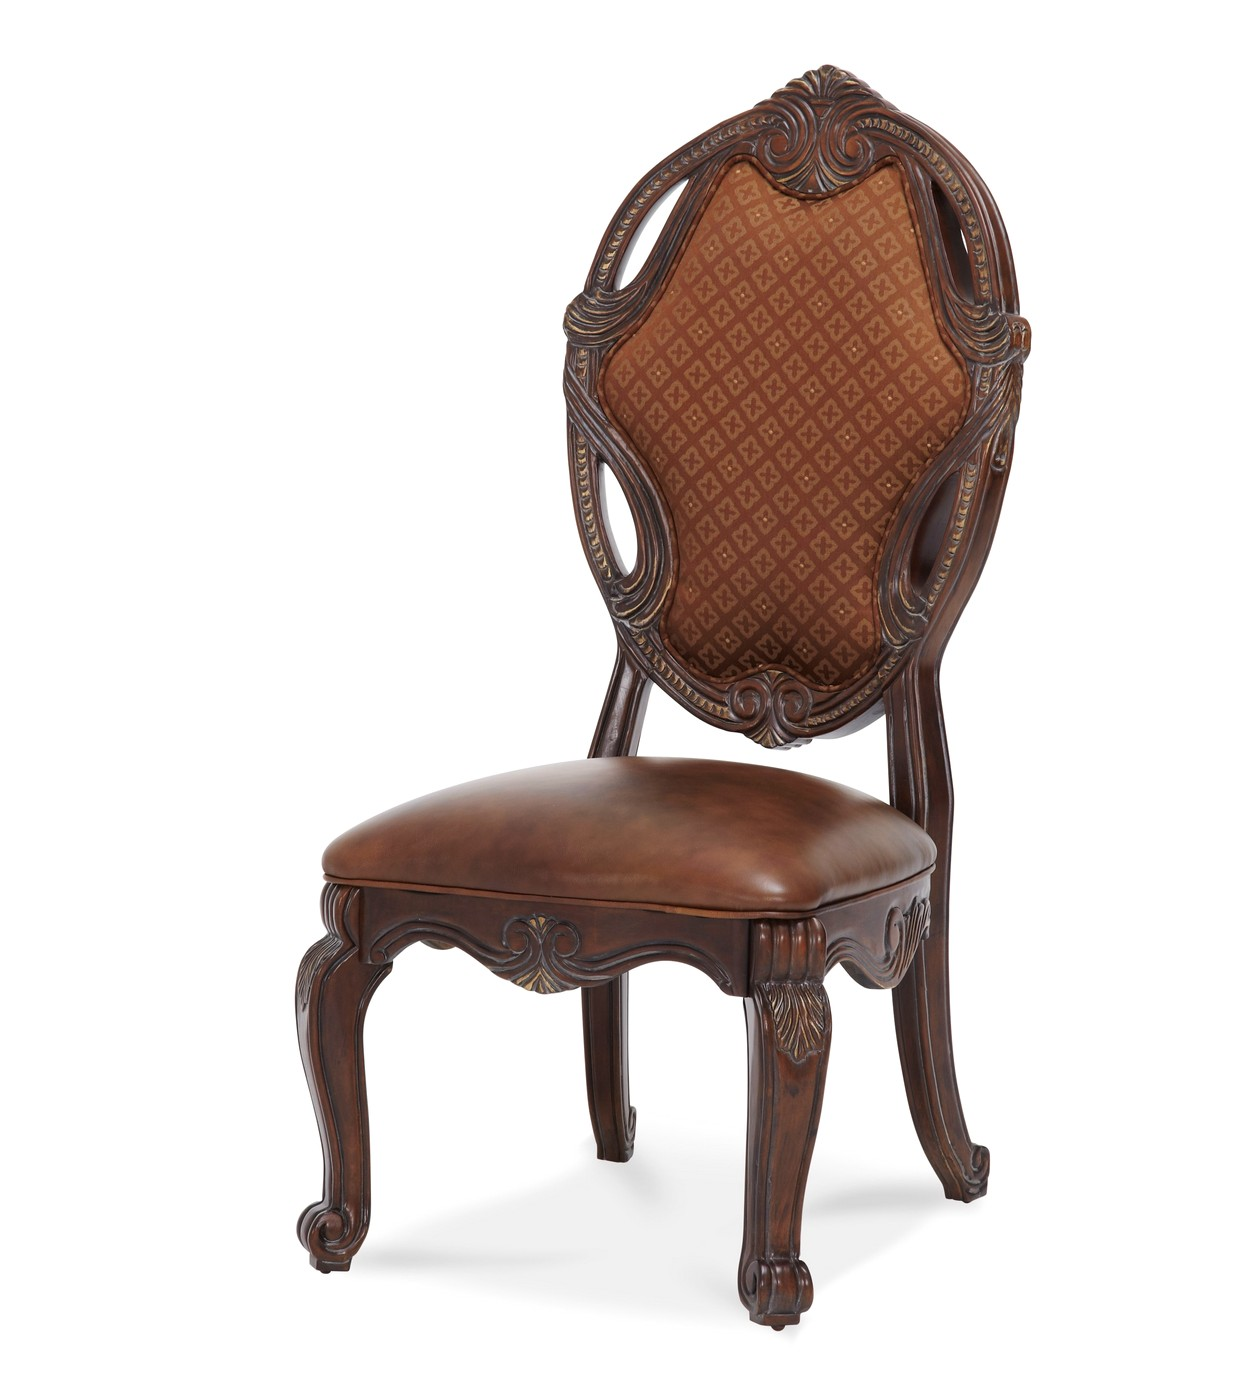 leather fabric chair michael amini essex manor traditional set of 2 leather 16627 | michael amini essex manor traditional set of 2 leather fabric side chairs by aico 35